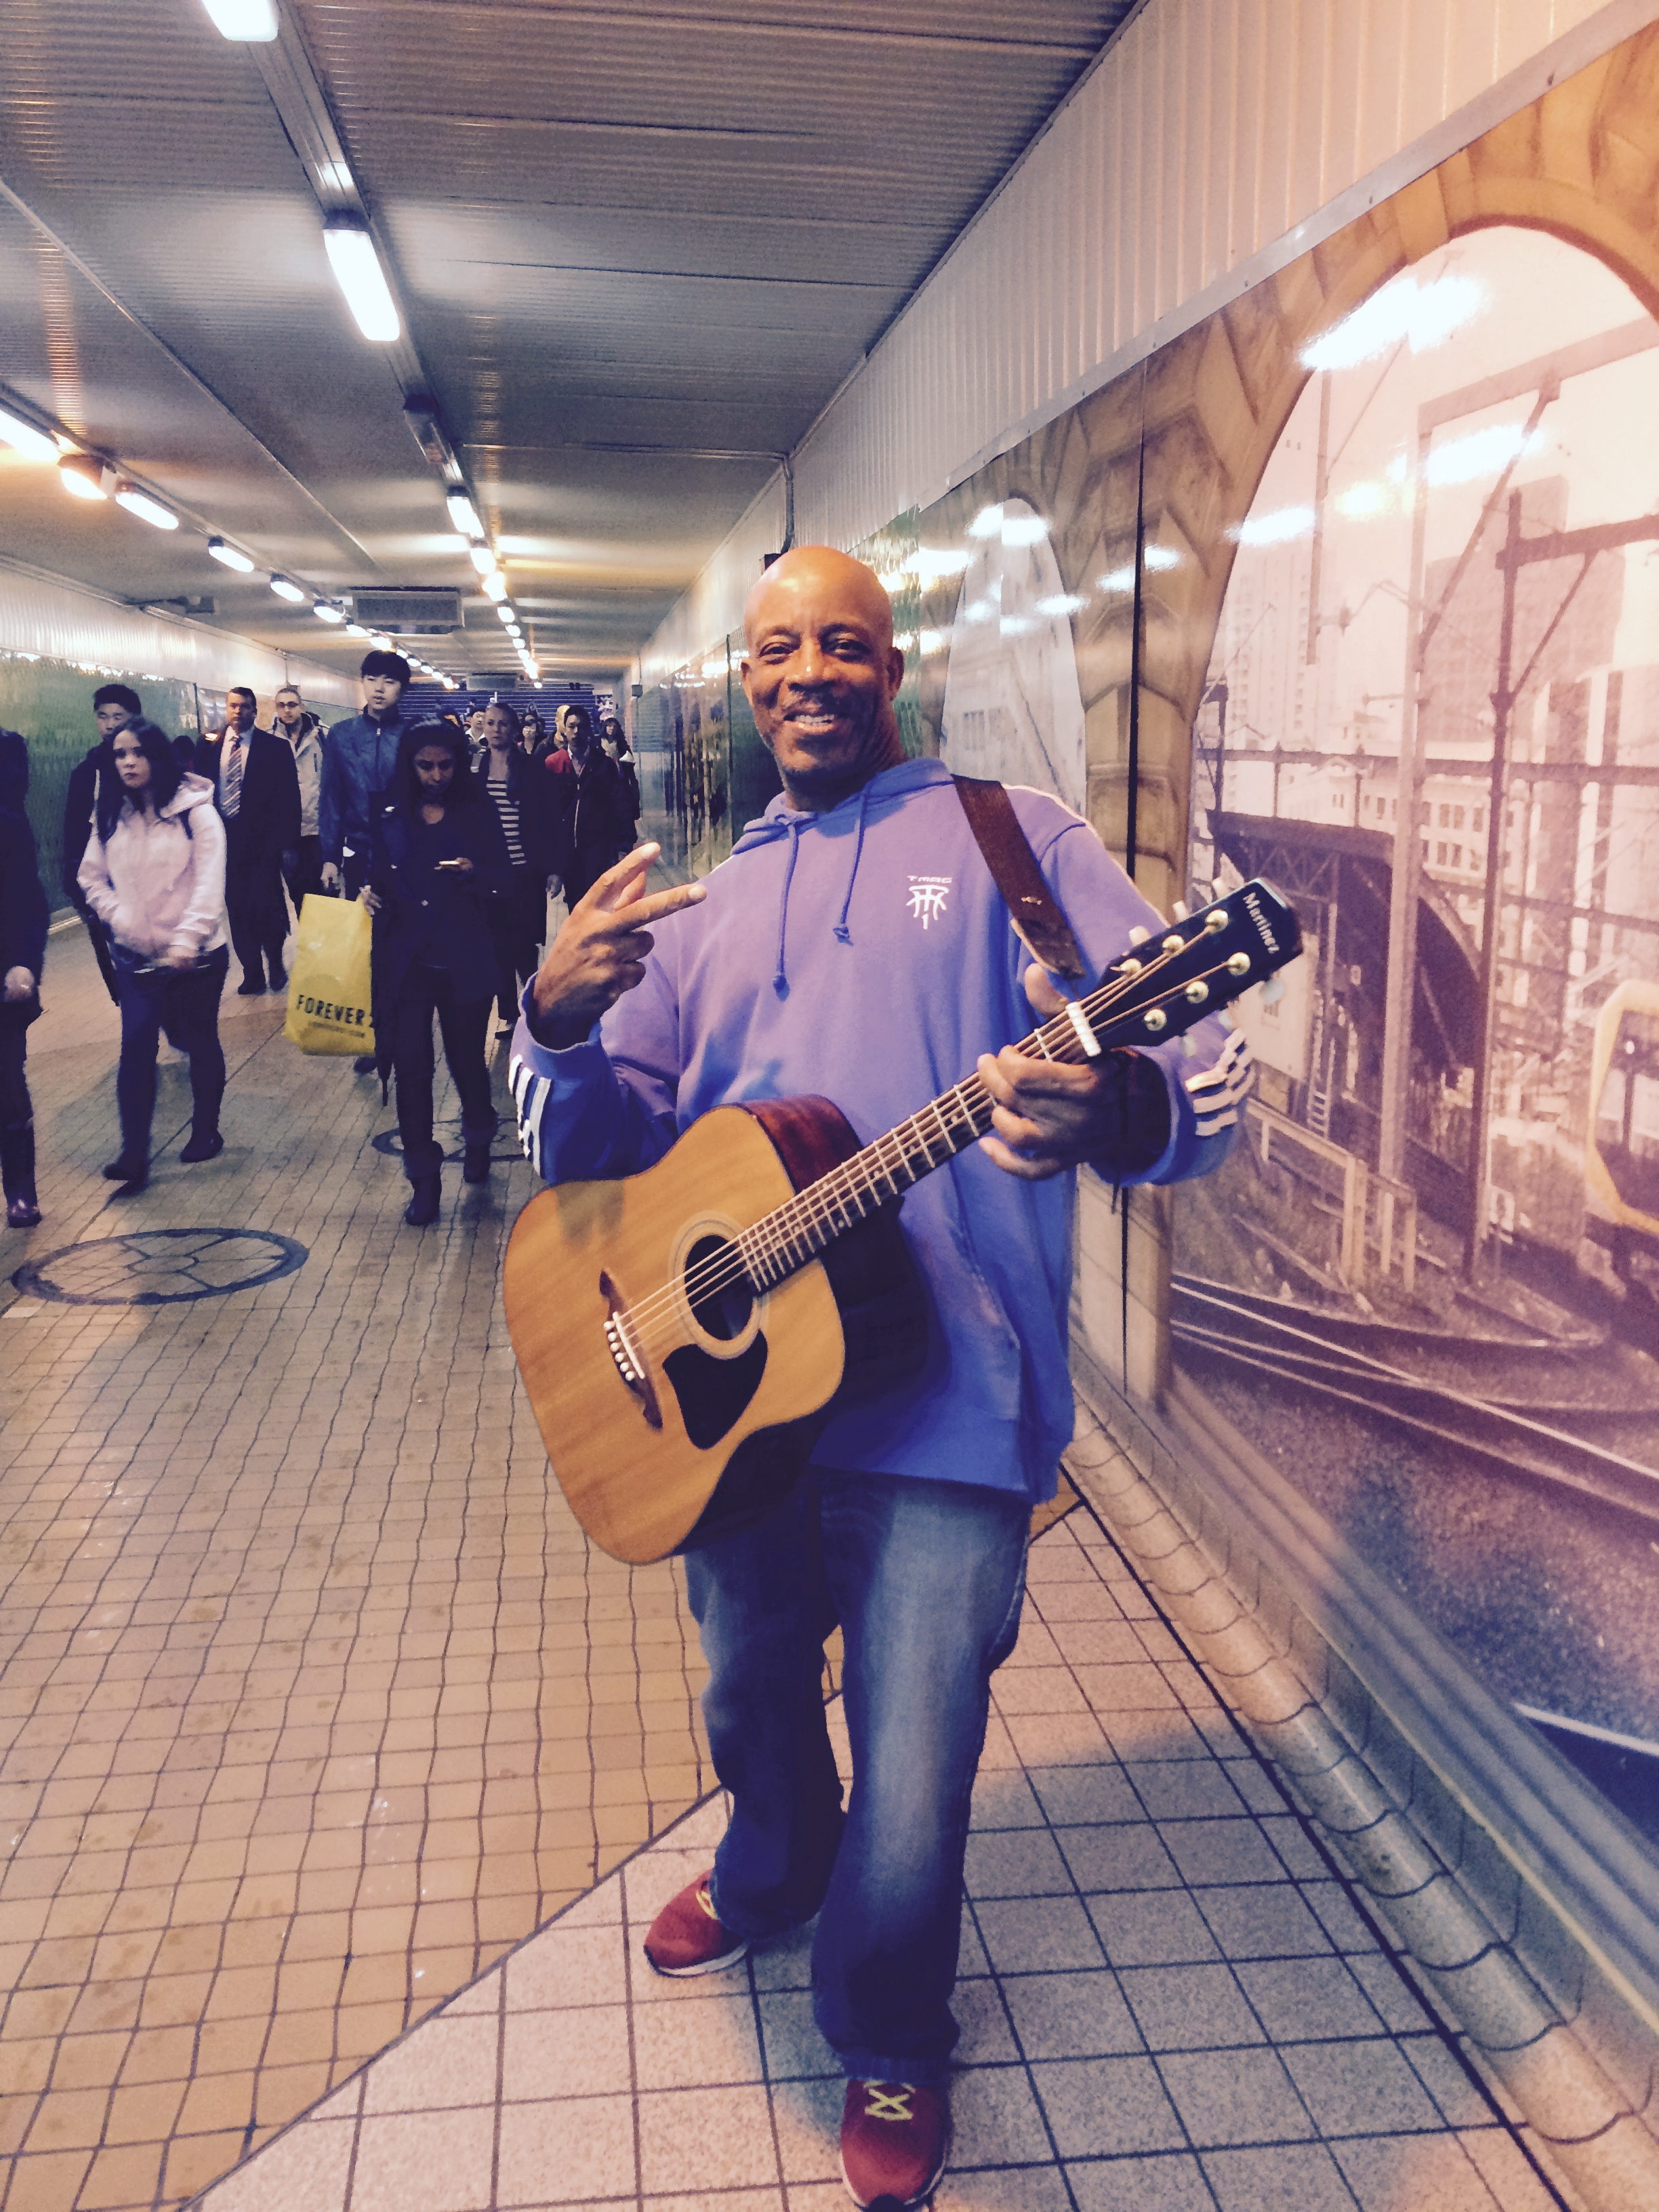 Editorial: Swan song for Sydney central tunnel buskers